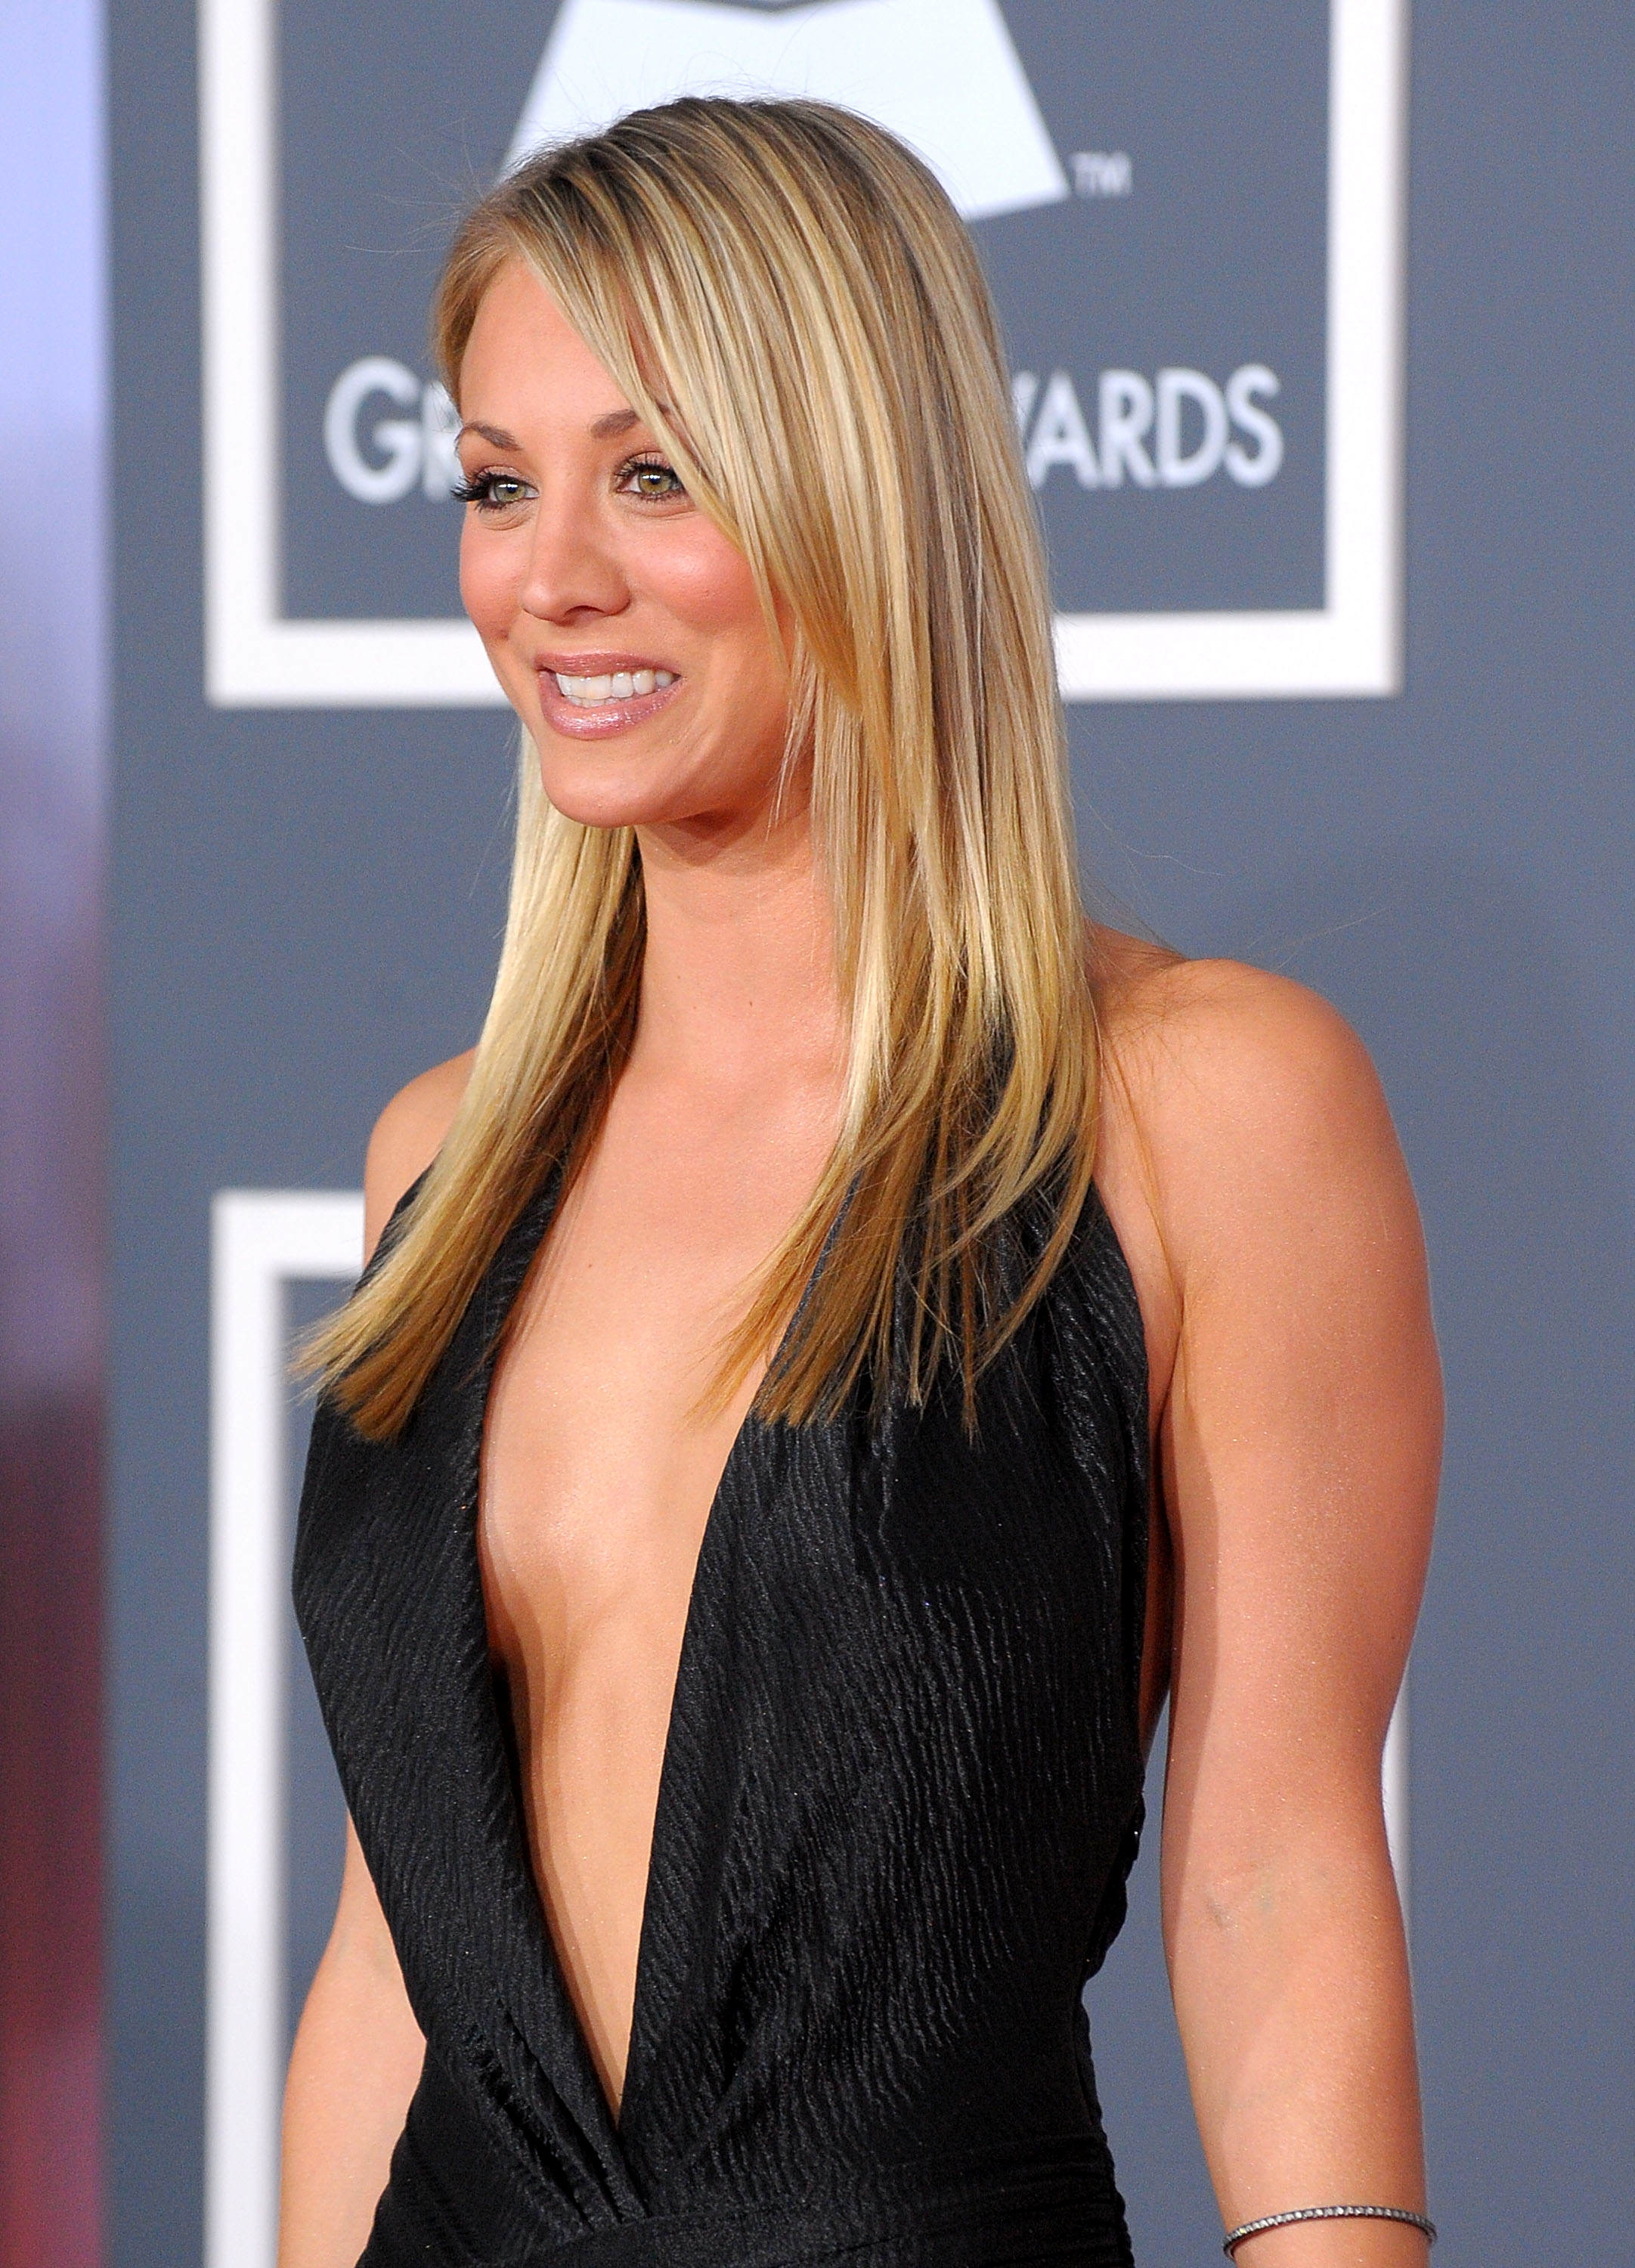 Kaley Cuoco Full hd wallpapers